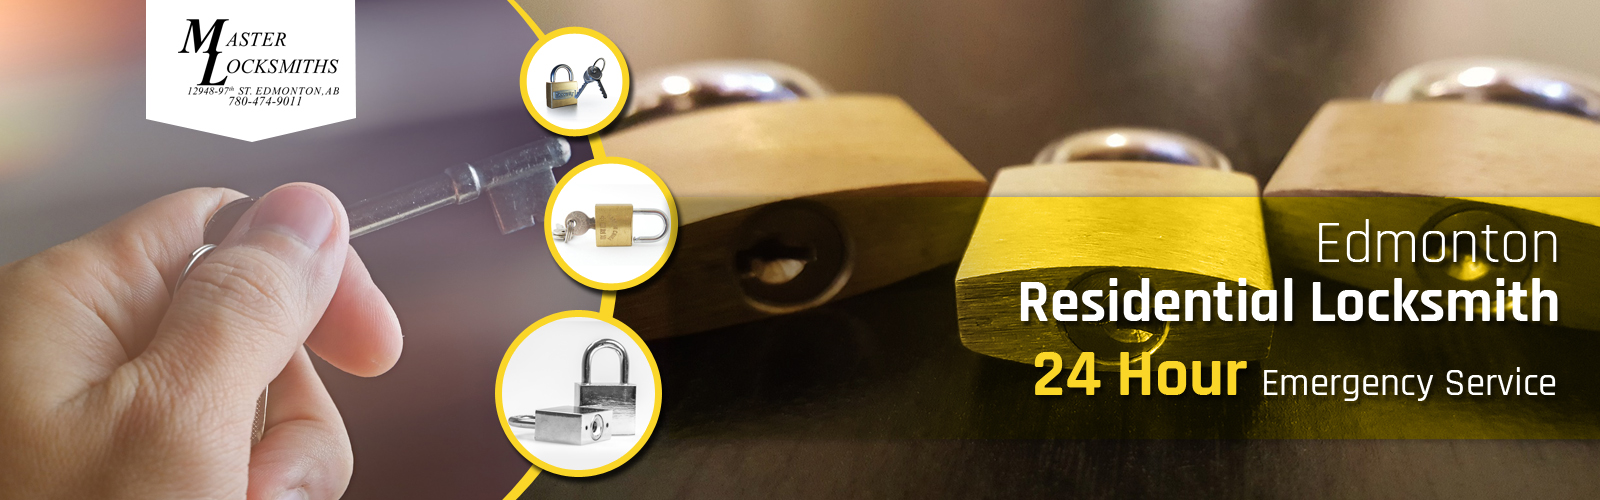 Master Locksmiths provides 24 hour emergency service | Call 780-474-9011